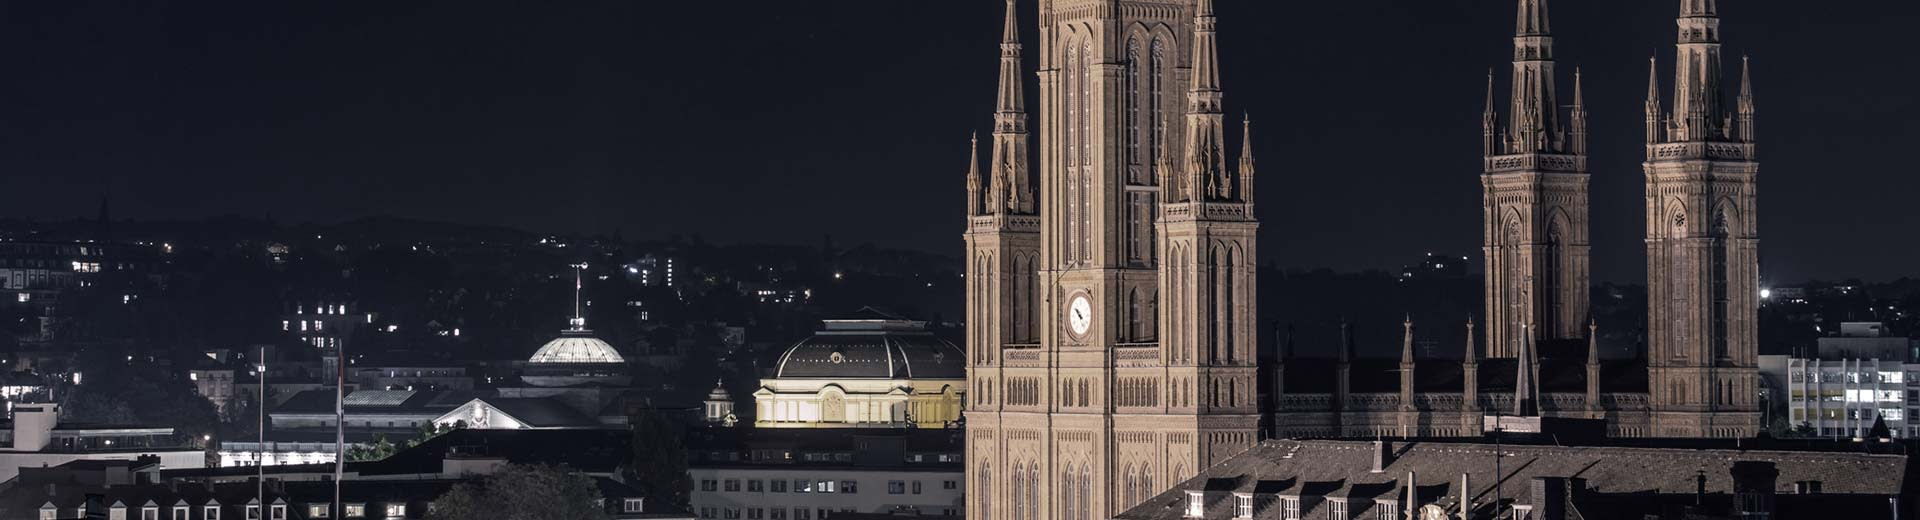 The world-famous Marktkirche dominates the foreground of Wiesbaden, with the lights of buildings in the distance